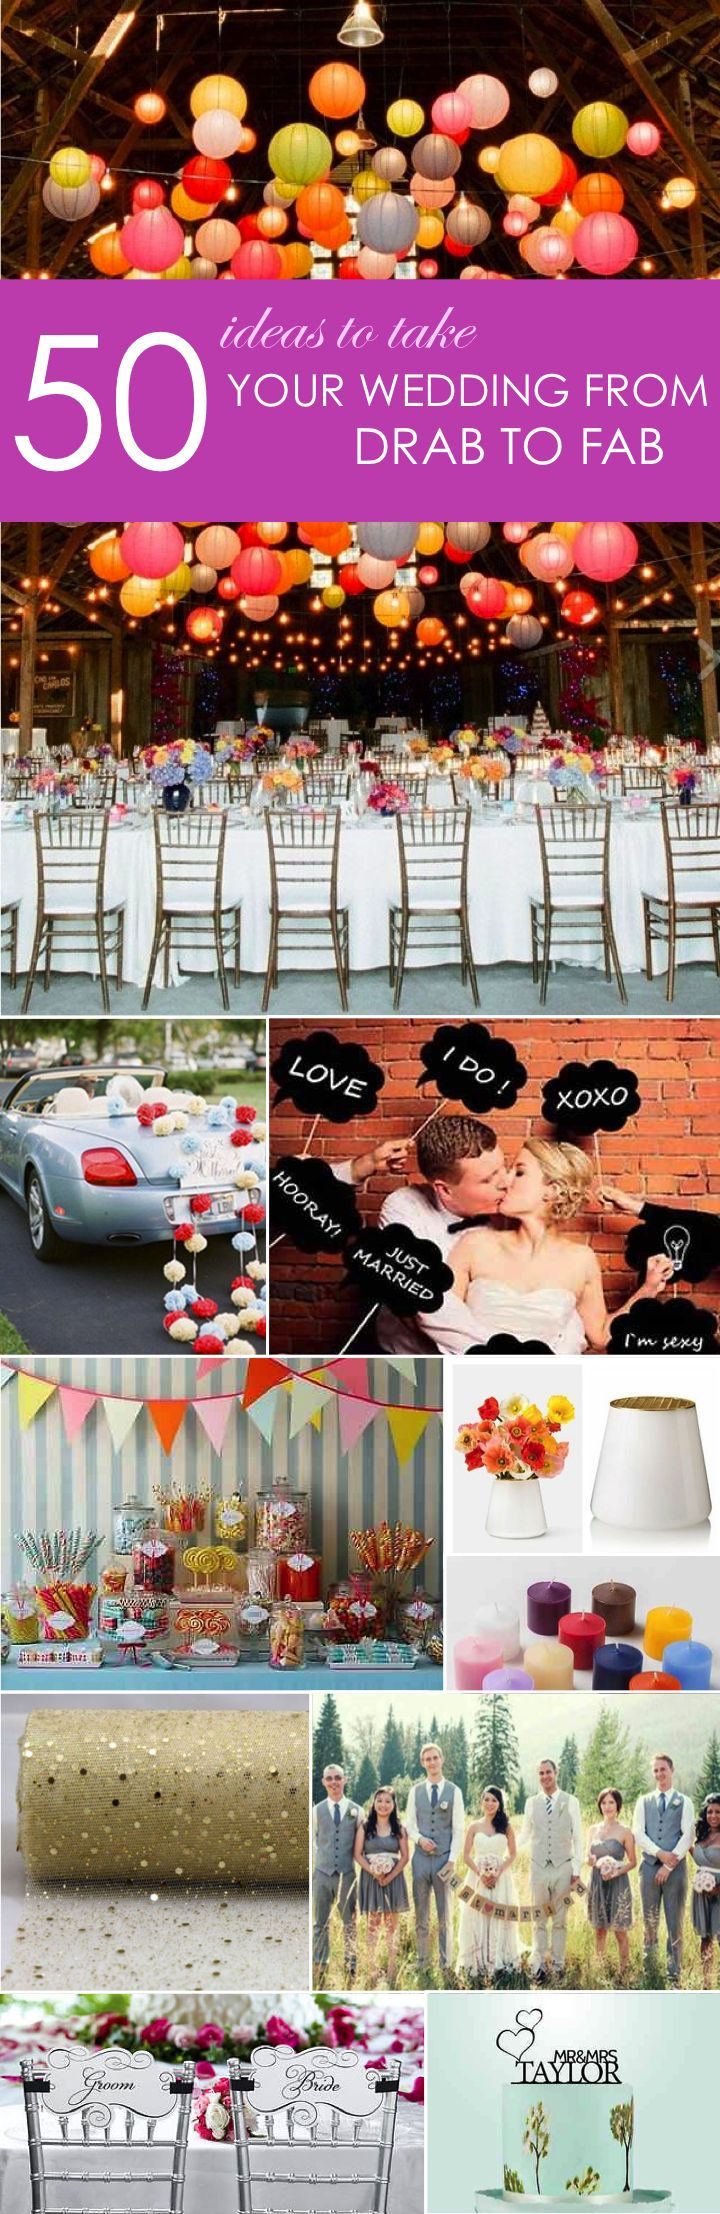 50 Ideas to take your wedding from drab to fab! http://www.ebay.com/gds/50-Ideas-to-Take-Your-Wedding-From-Drab-to-Fab-/10000000204629874/g.html?roken2=ti.pQ3Jpc3N5IEFycGllIE90dA==